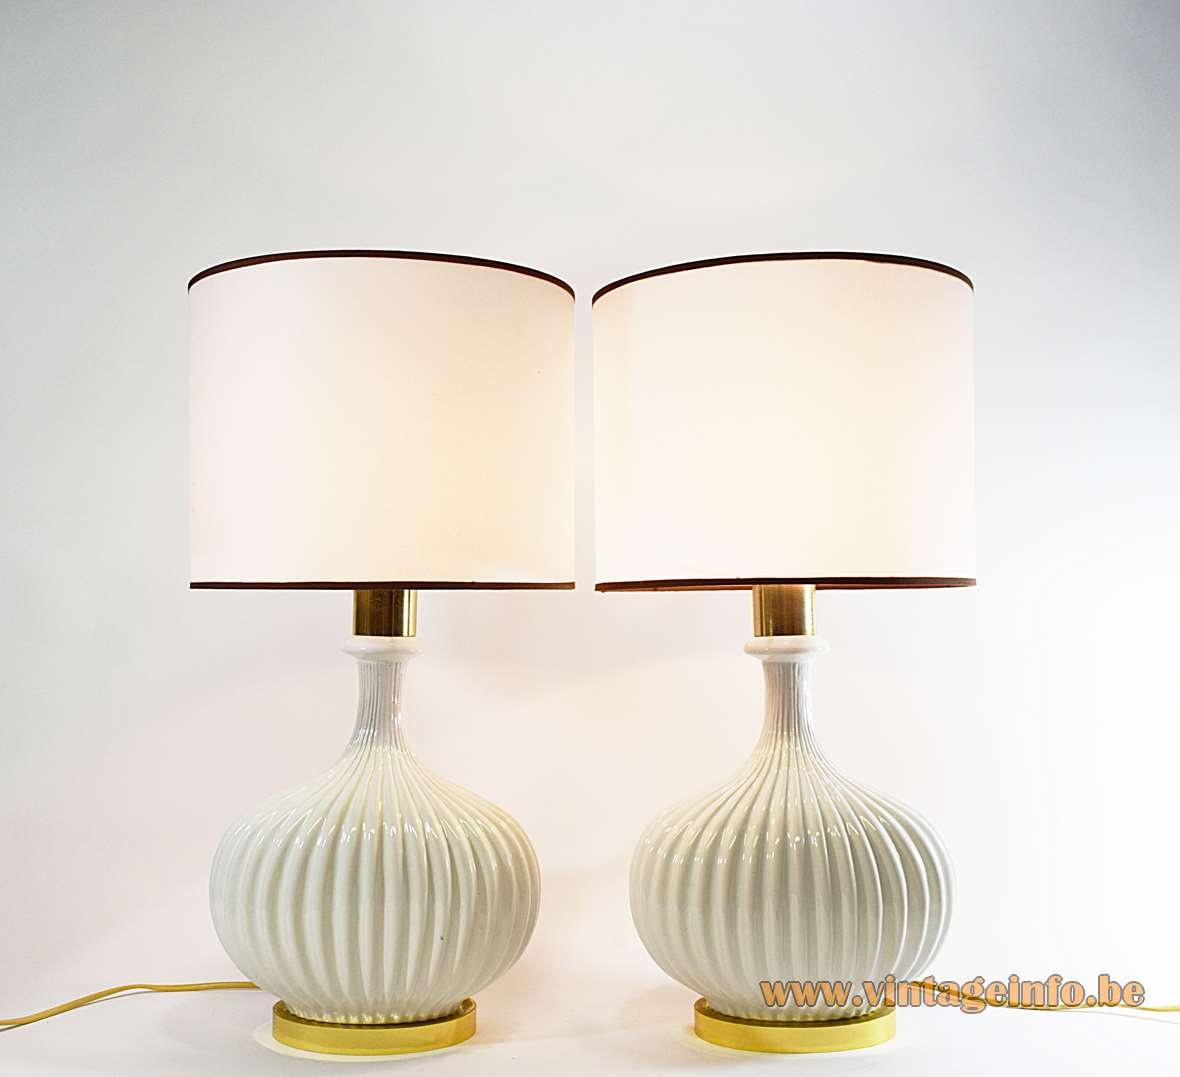 Oval Ceramics & Brass Table Lamps